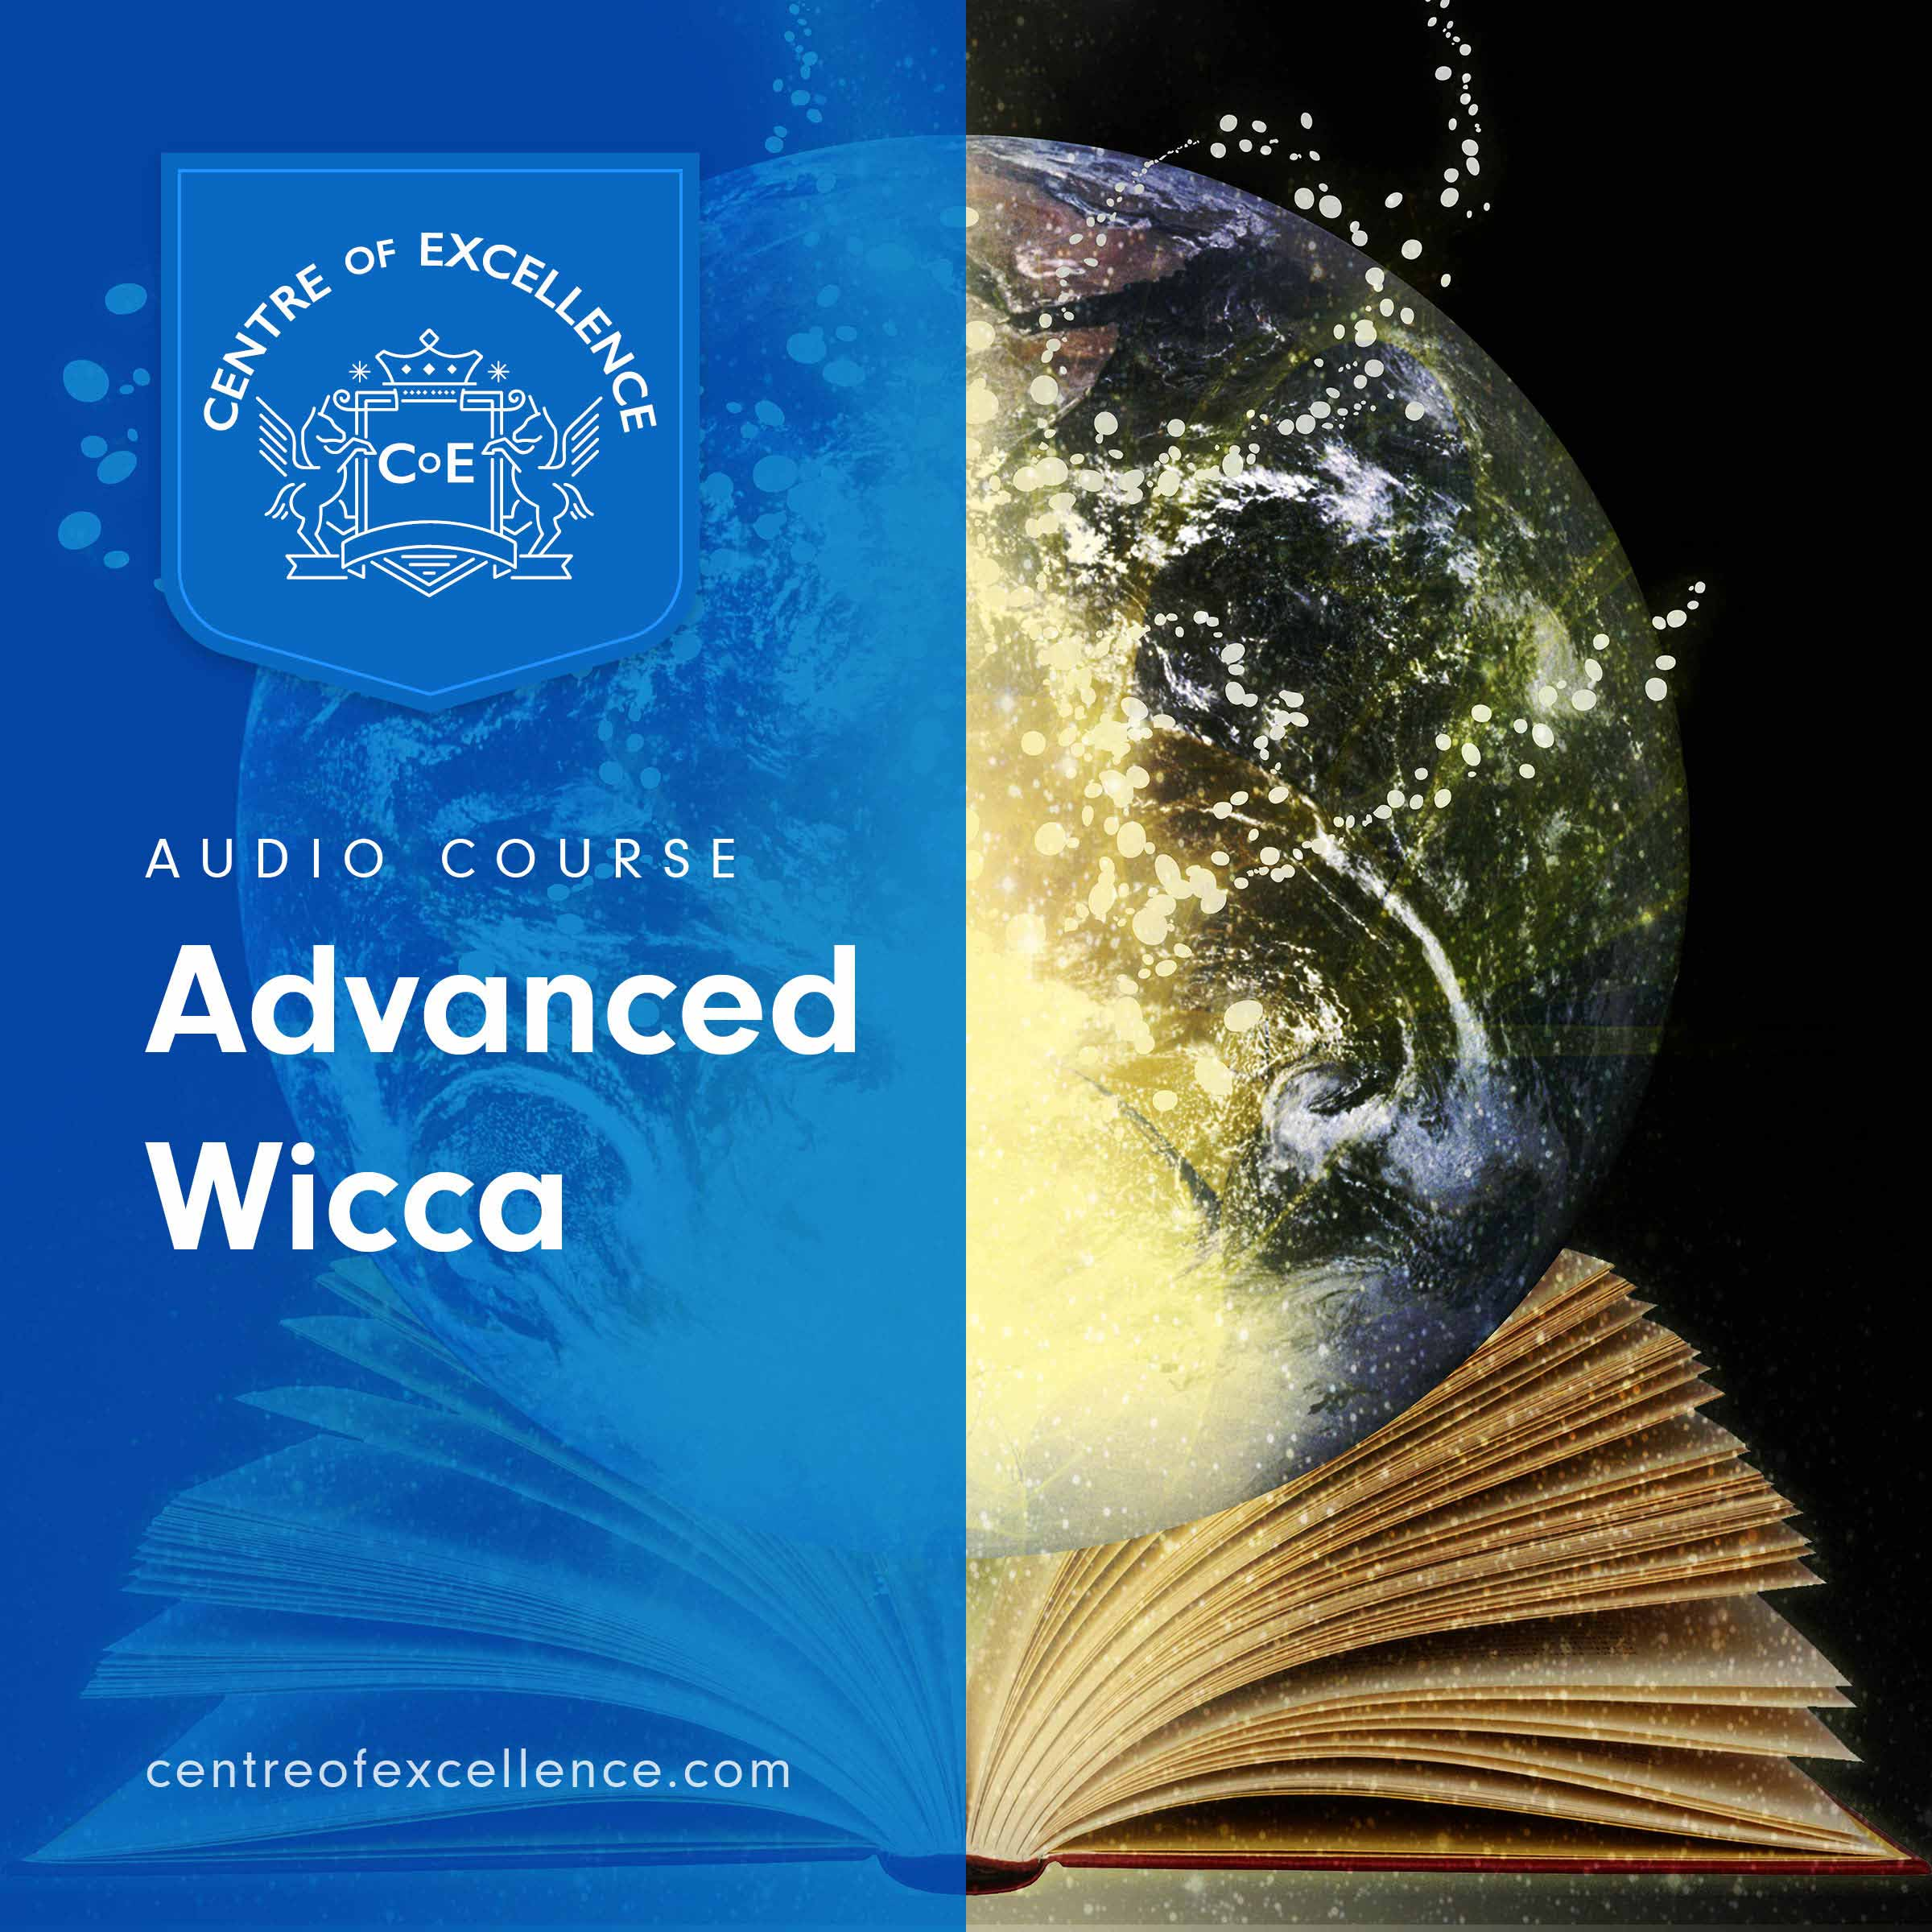 advanced wicca audio course - centre of excellence